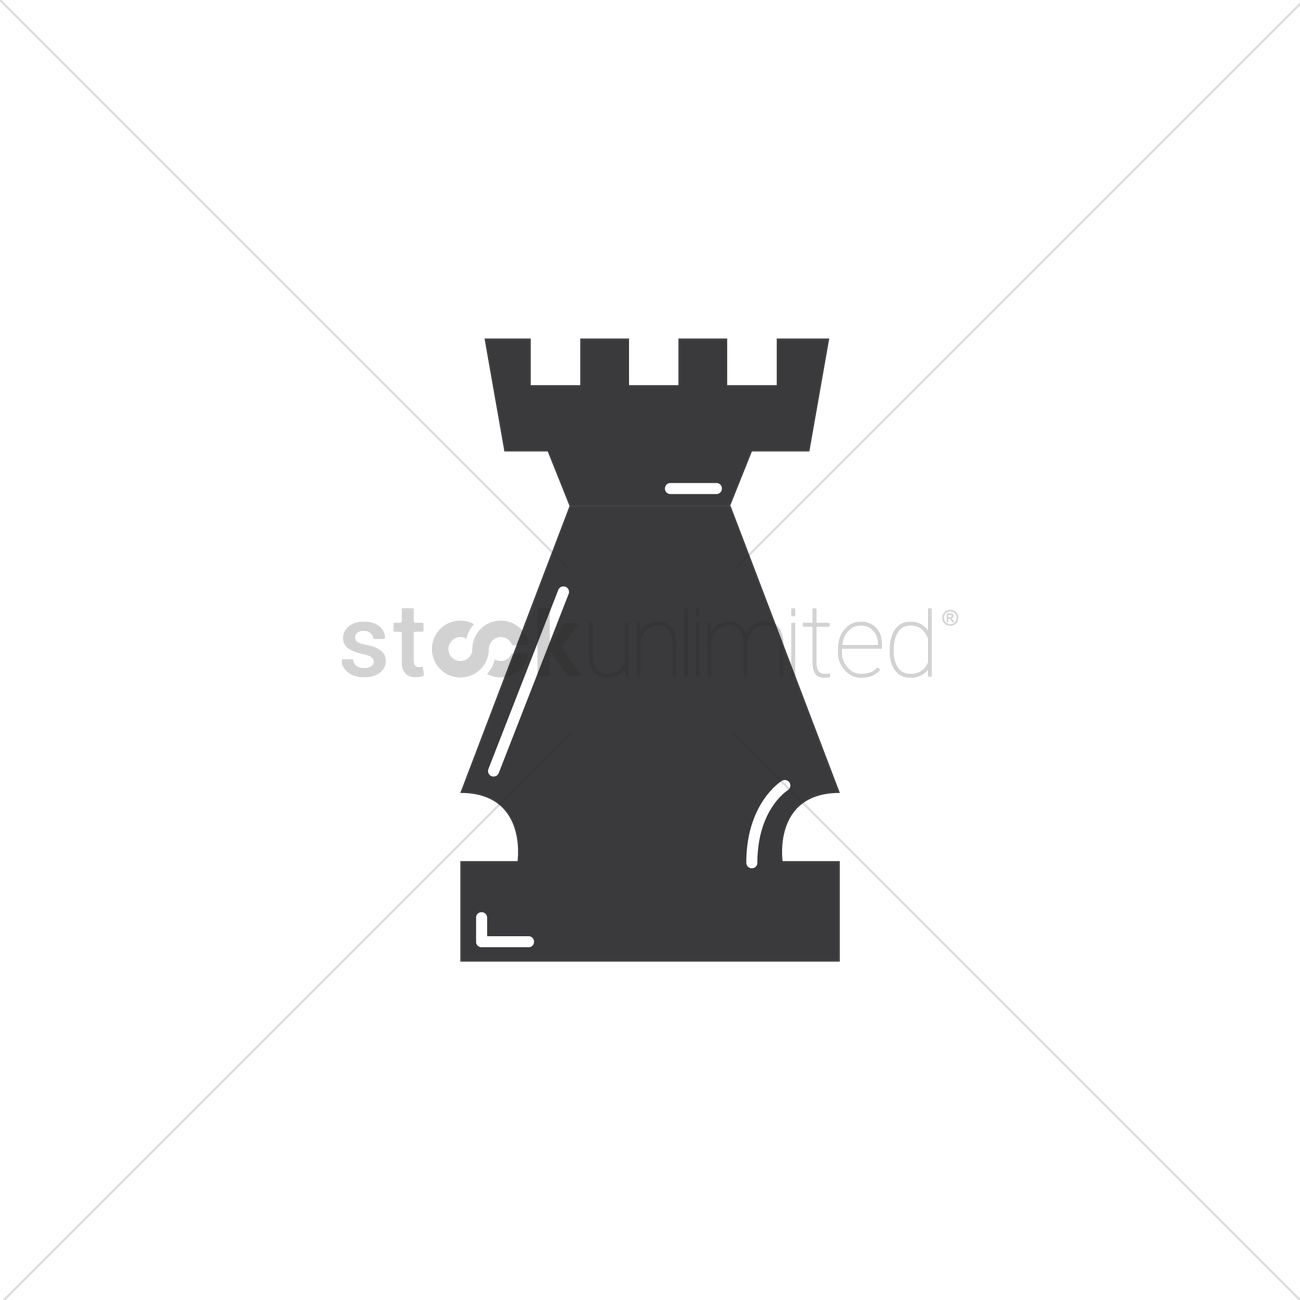 Rook chess piece Vector Image - 1951126 | StockUnlimited